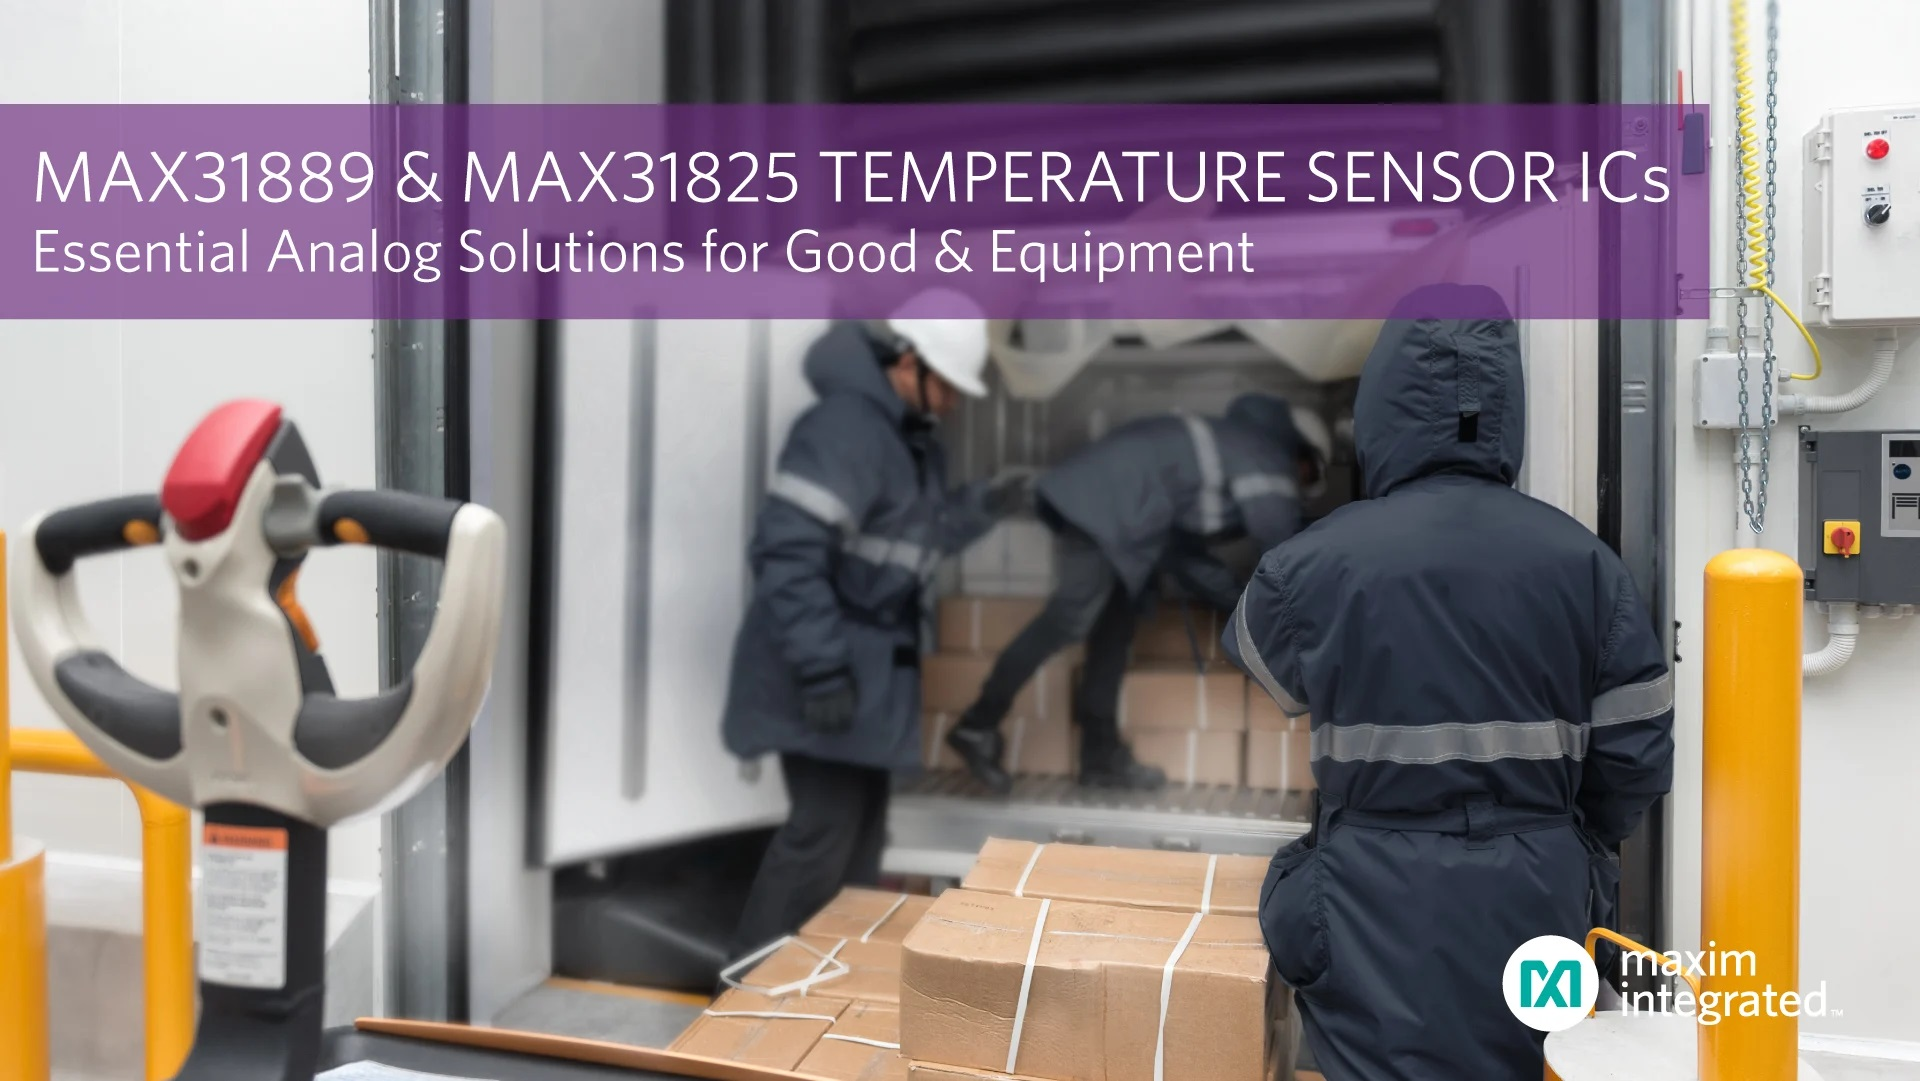 Analog Temperature Sensor ICs Deliver Precision Measurement